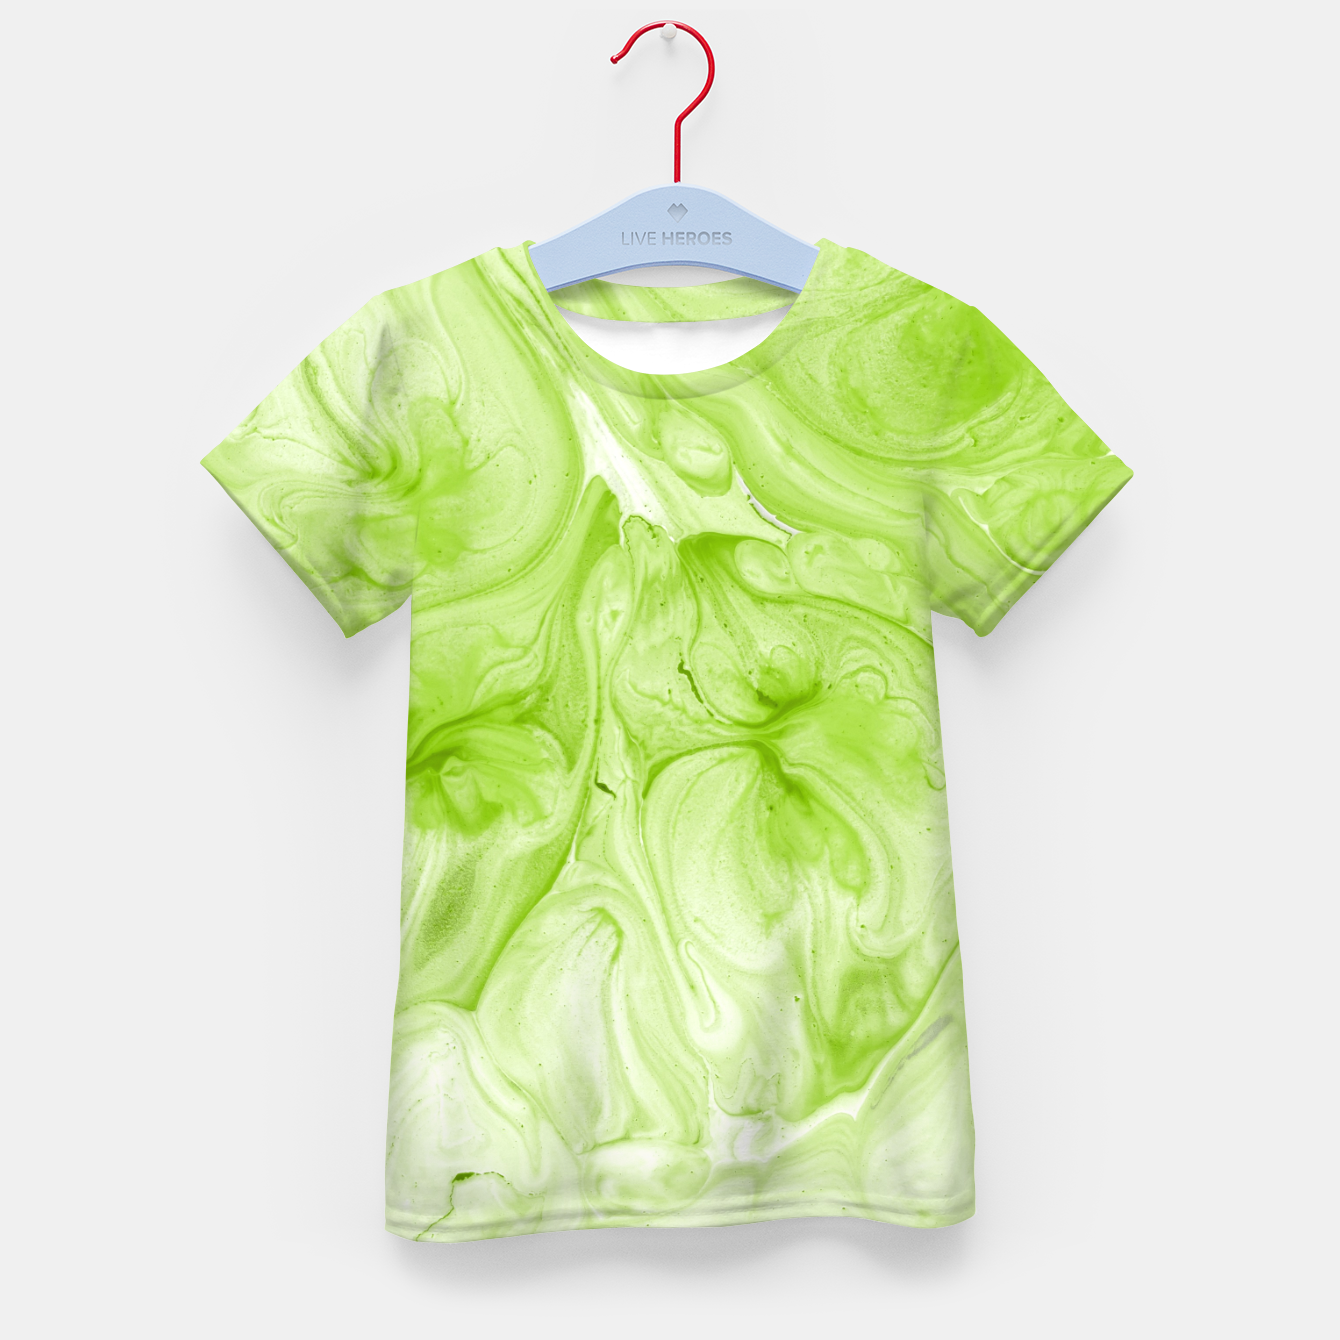 Image of Lime Juice Kid's t-shirt - Live Heroes